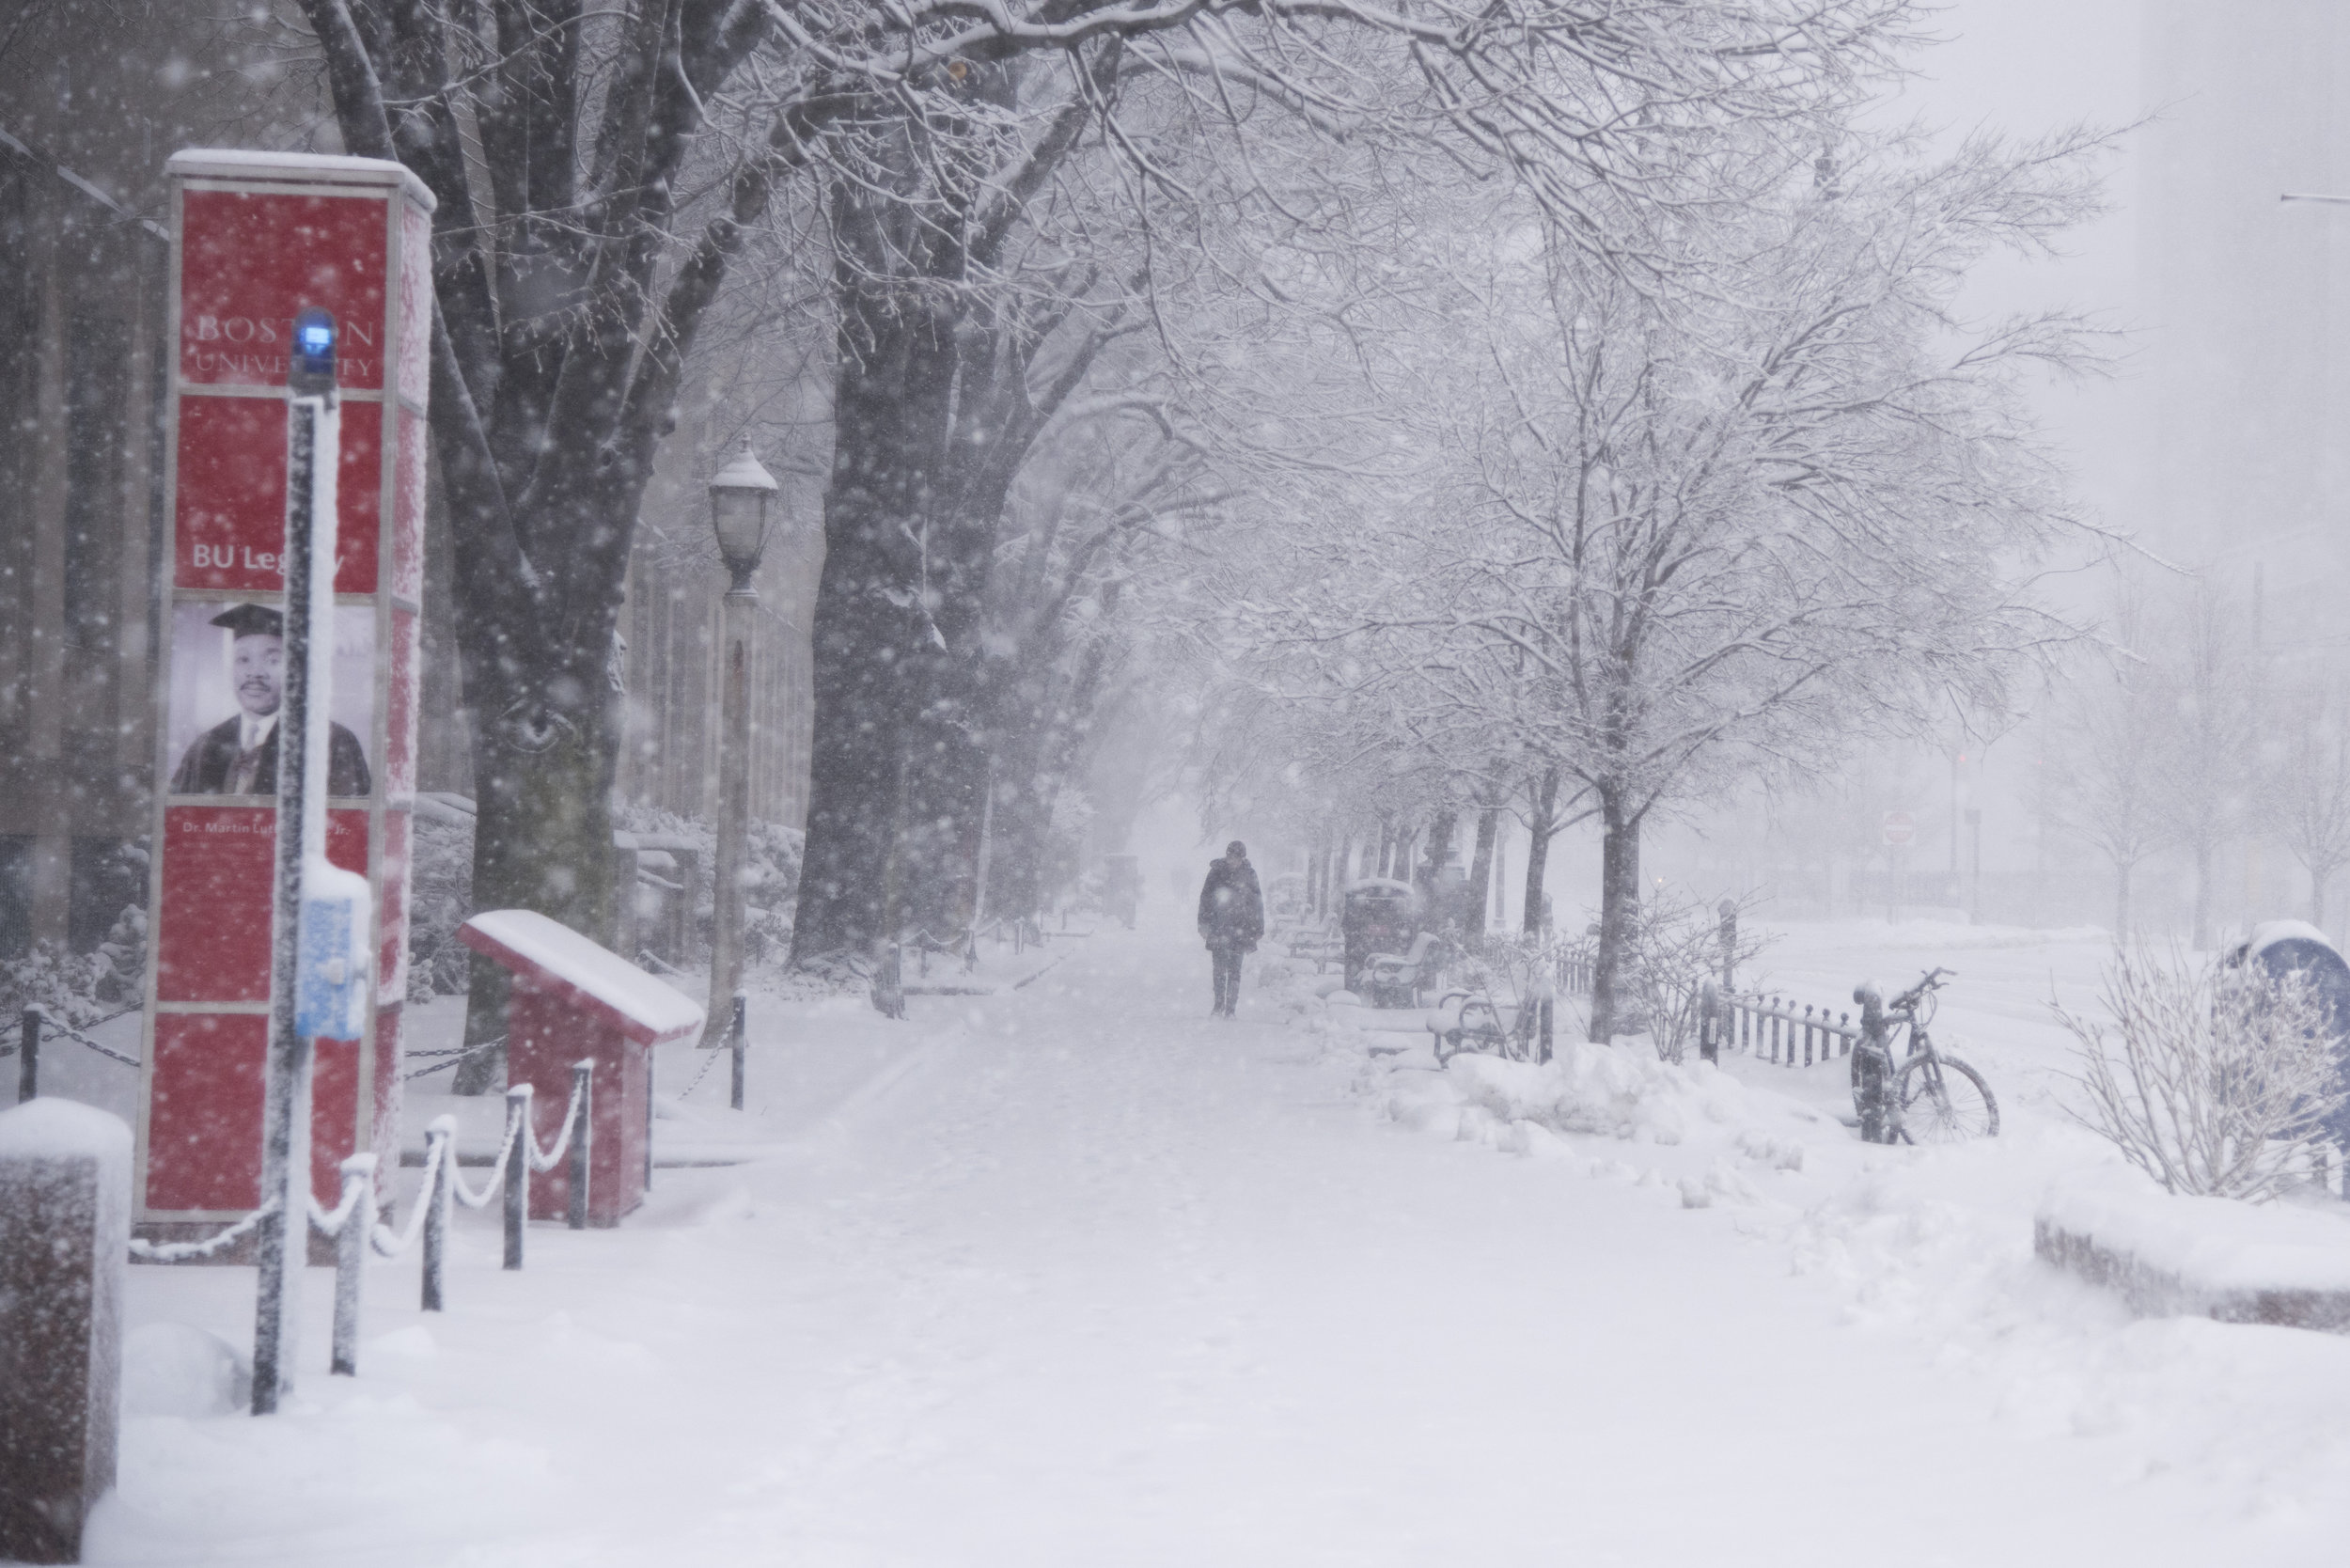 Commonwealth Avenue, usually bustling with Boston University students, becomes a snowy wonderland during New England's third nor'easter in two weeks on February 28. The storm brought blizzard-like conditions and the cancellation of classes at Boston-area colleges and public schools.